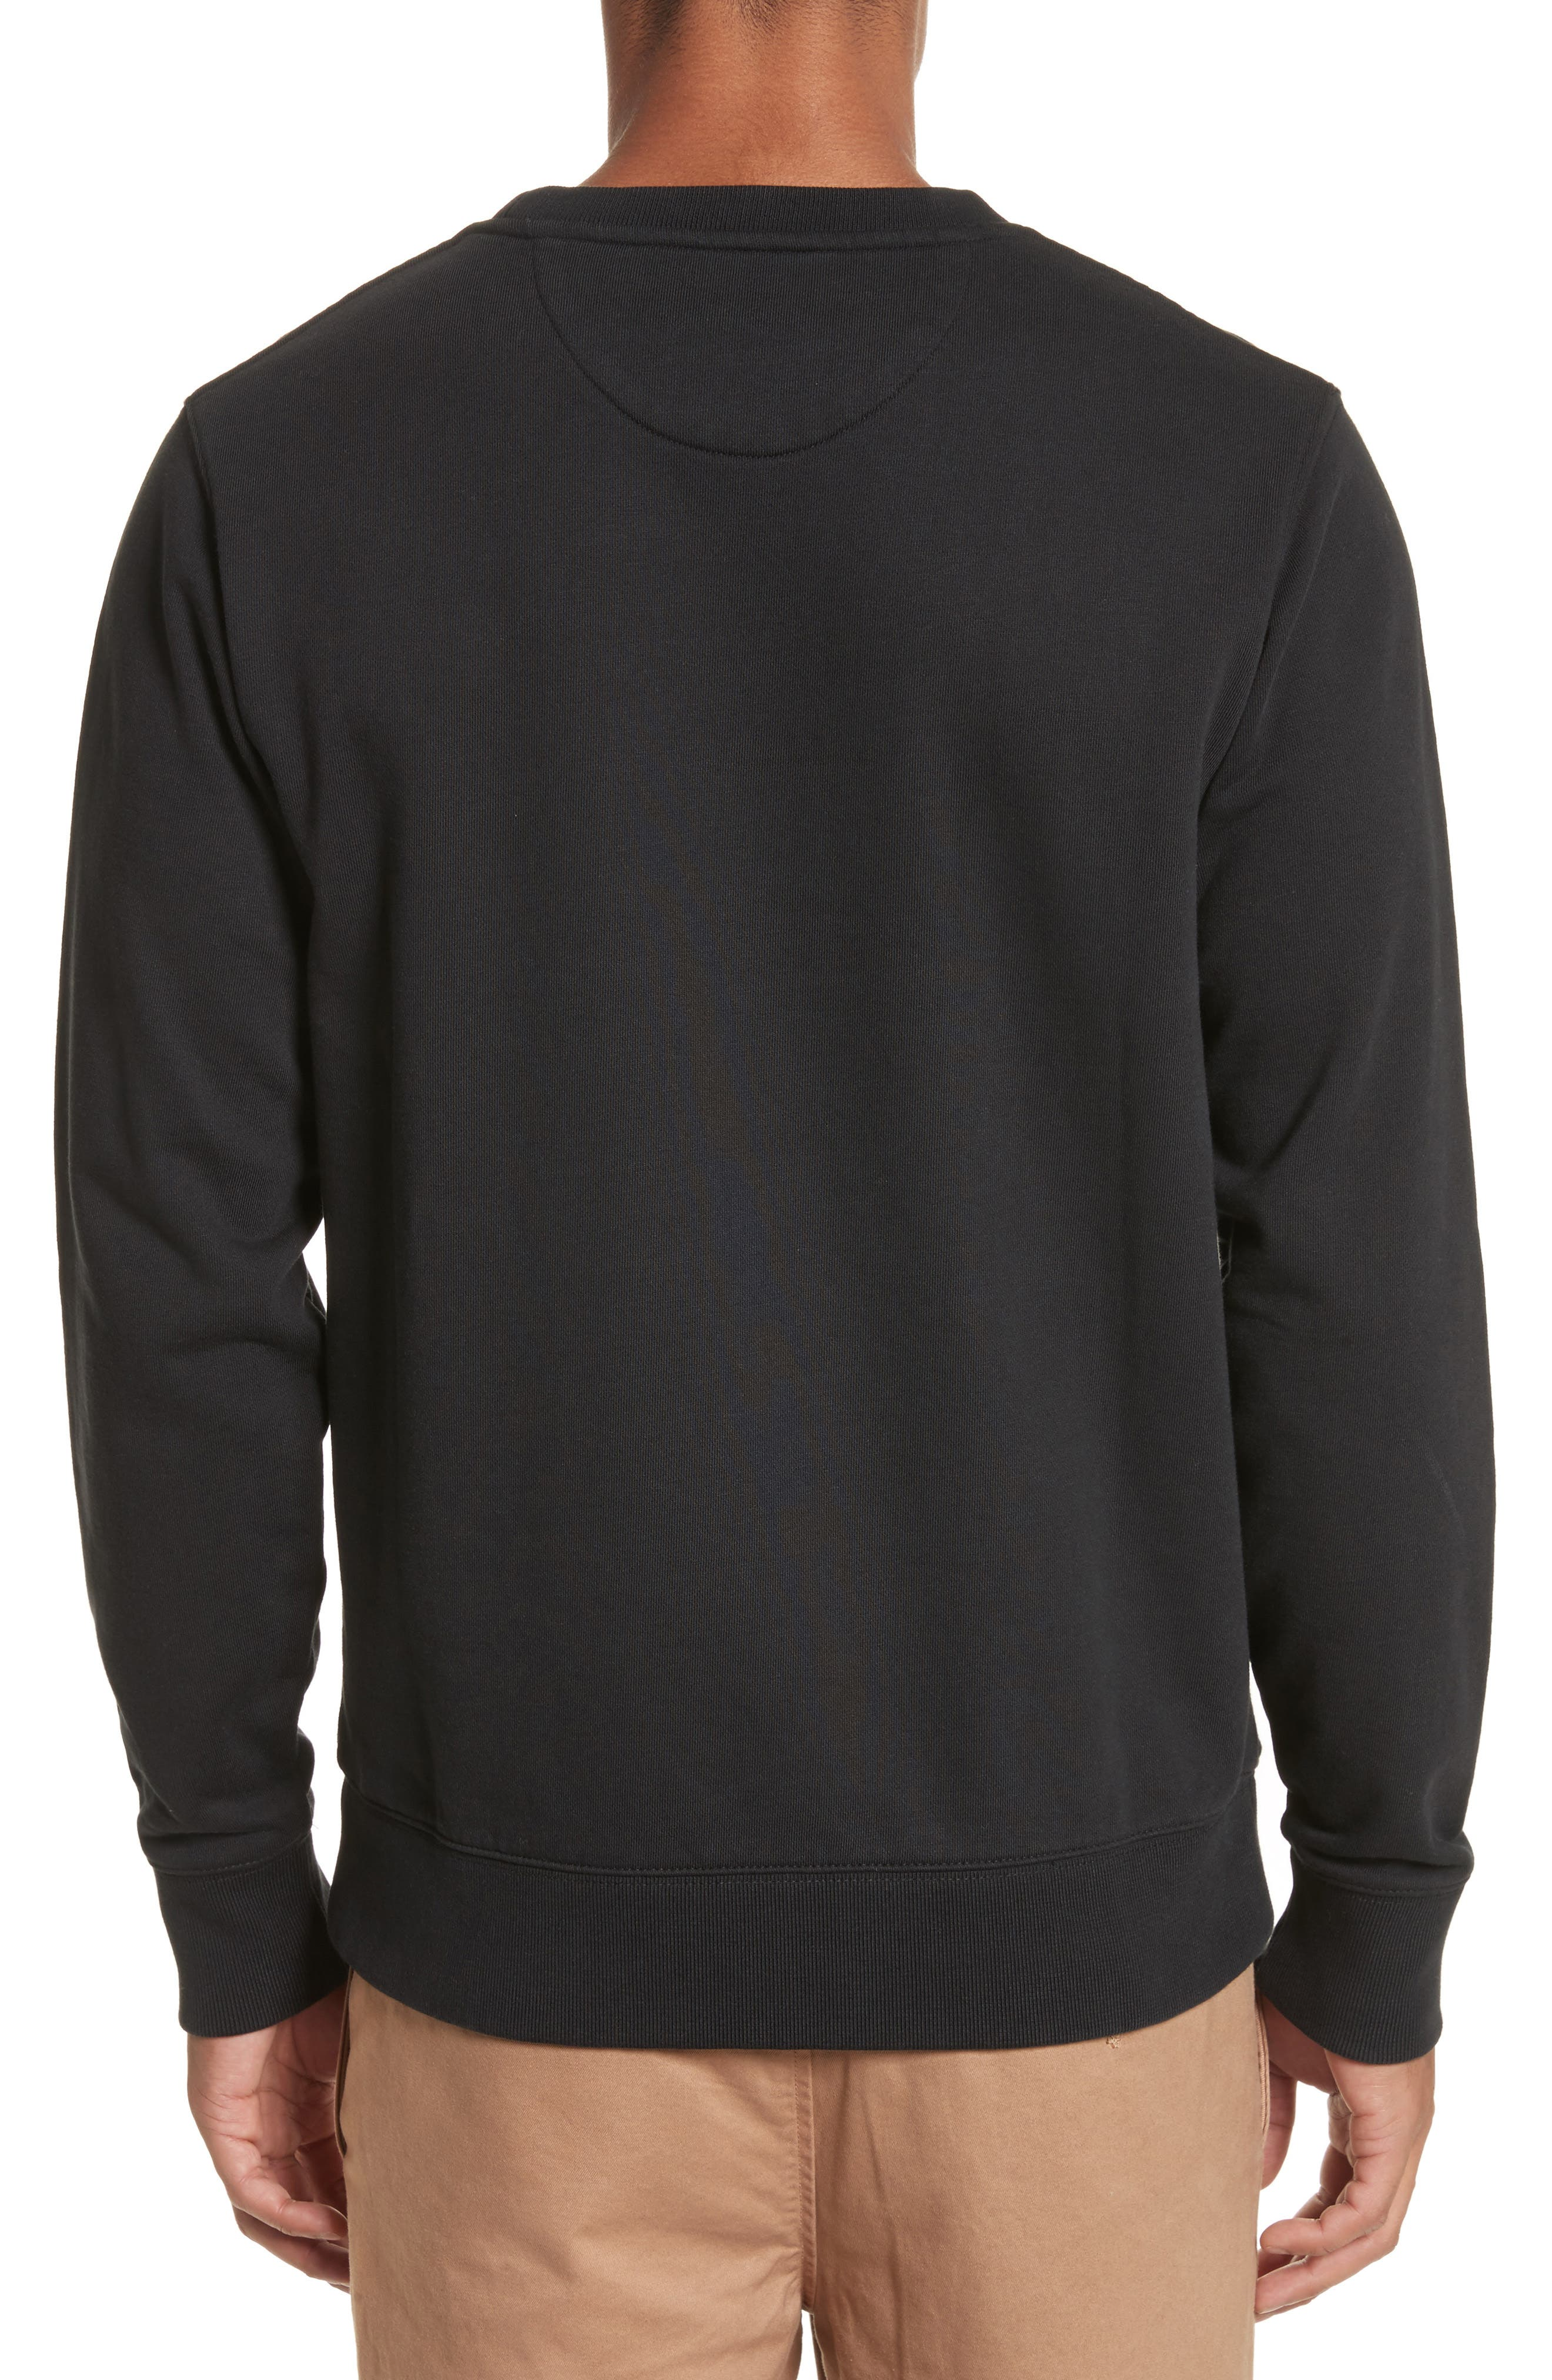 Bowery Miller Graphic Sweatshirt,                             Alternate thumbnail 2, color,                             001